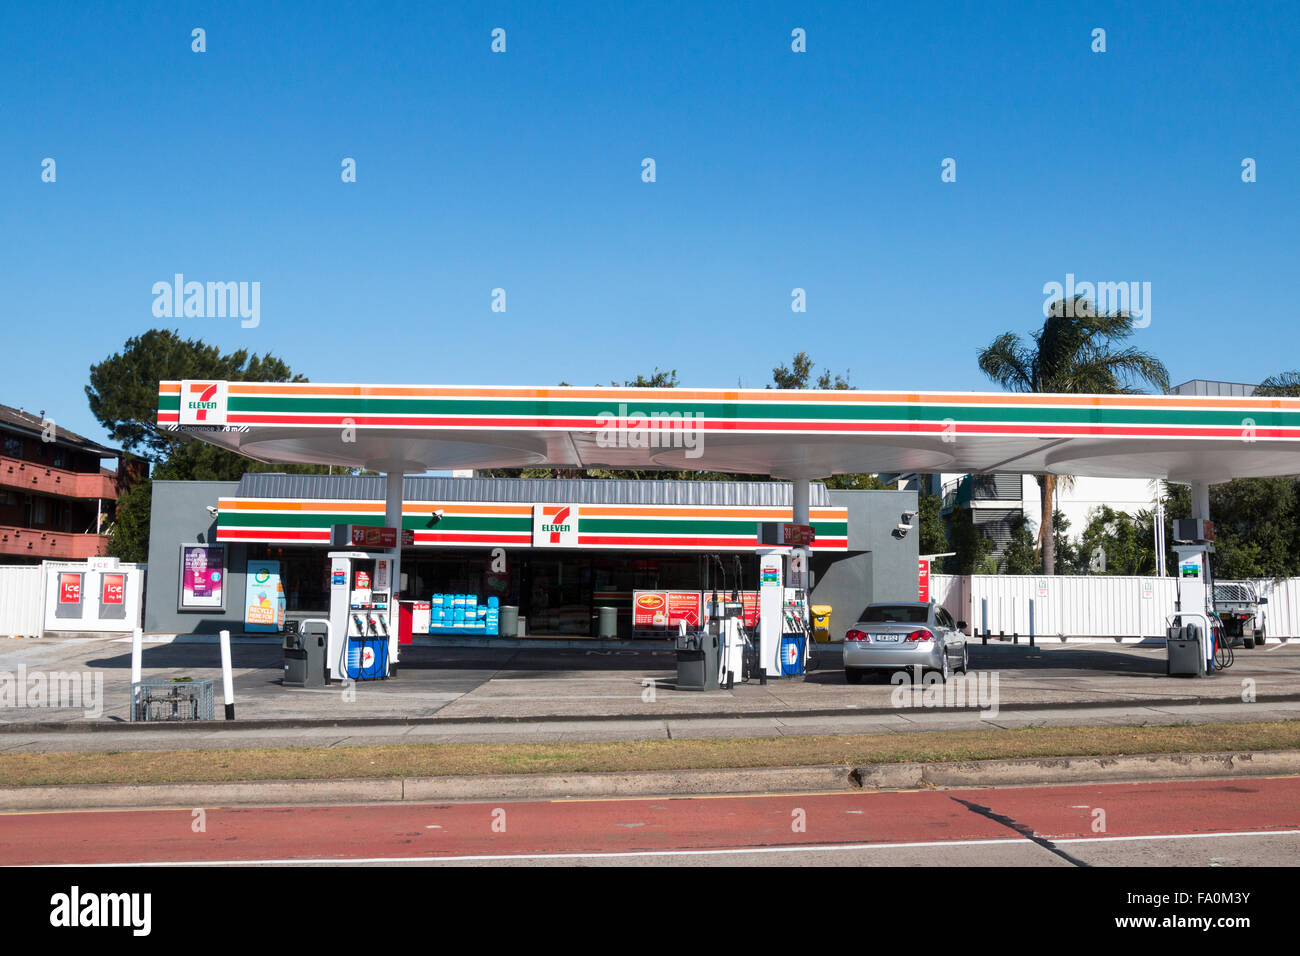 7 Eleven Petrol Fuel Gas Station In Dee Why Suburb Of